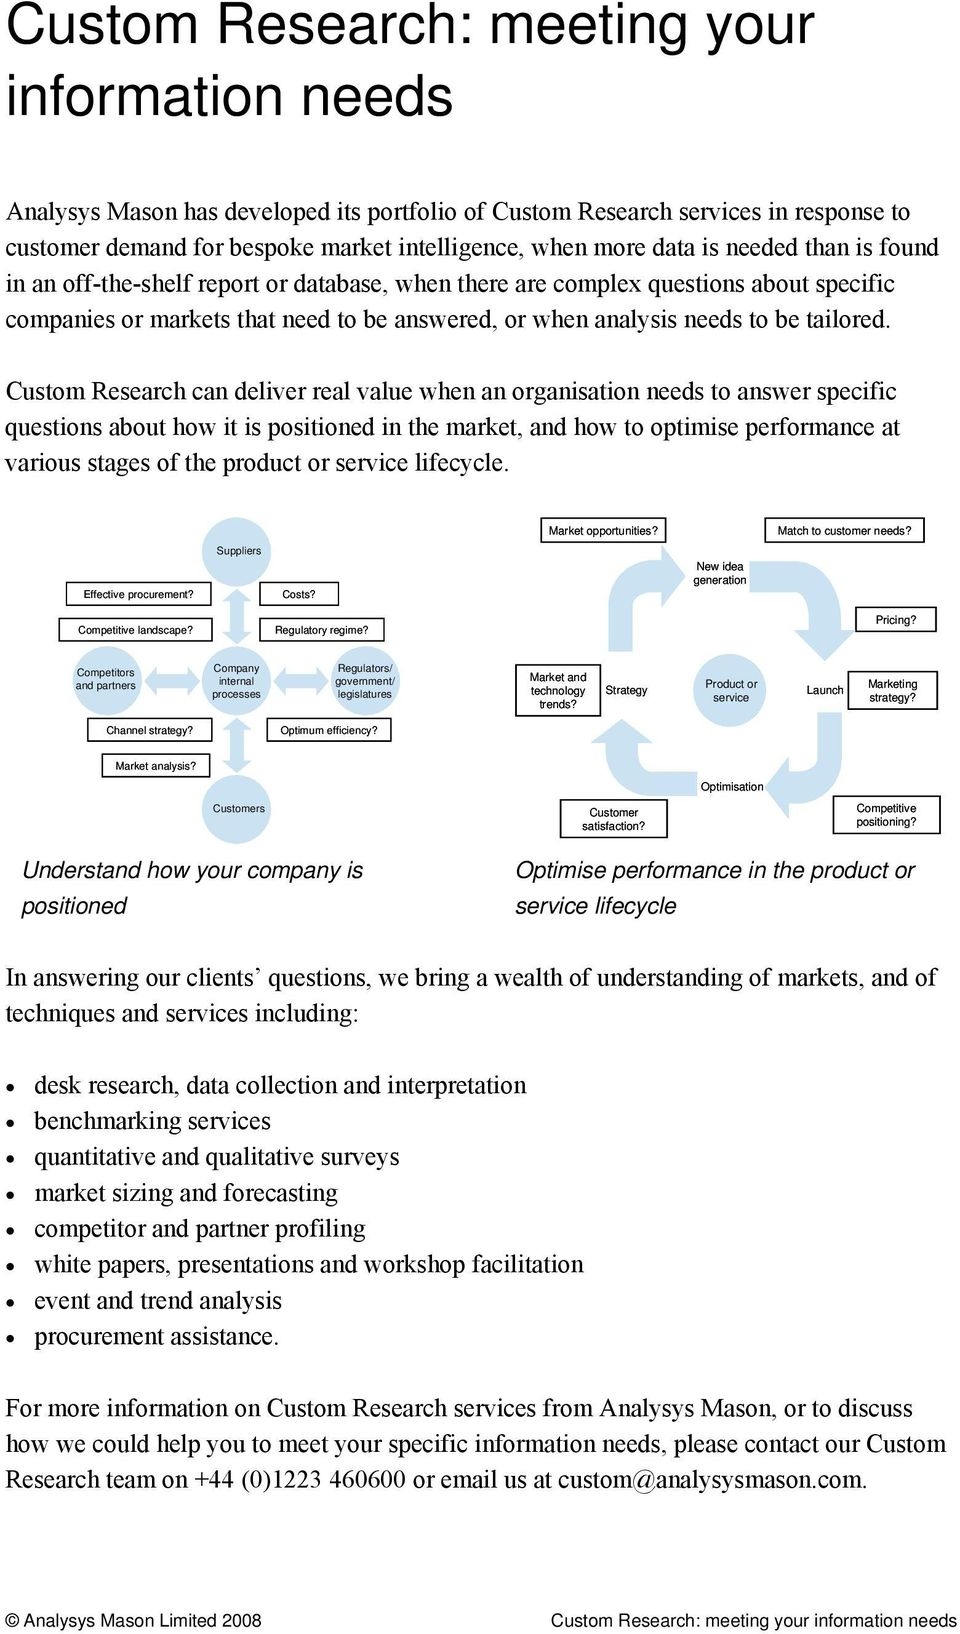 Custom Research can deliver real value when an organisation needs to answer specific questions about how it is positioned in the market, and how to optimise performance at various stages of the